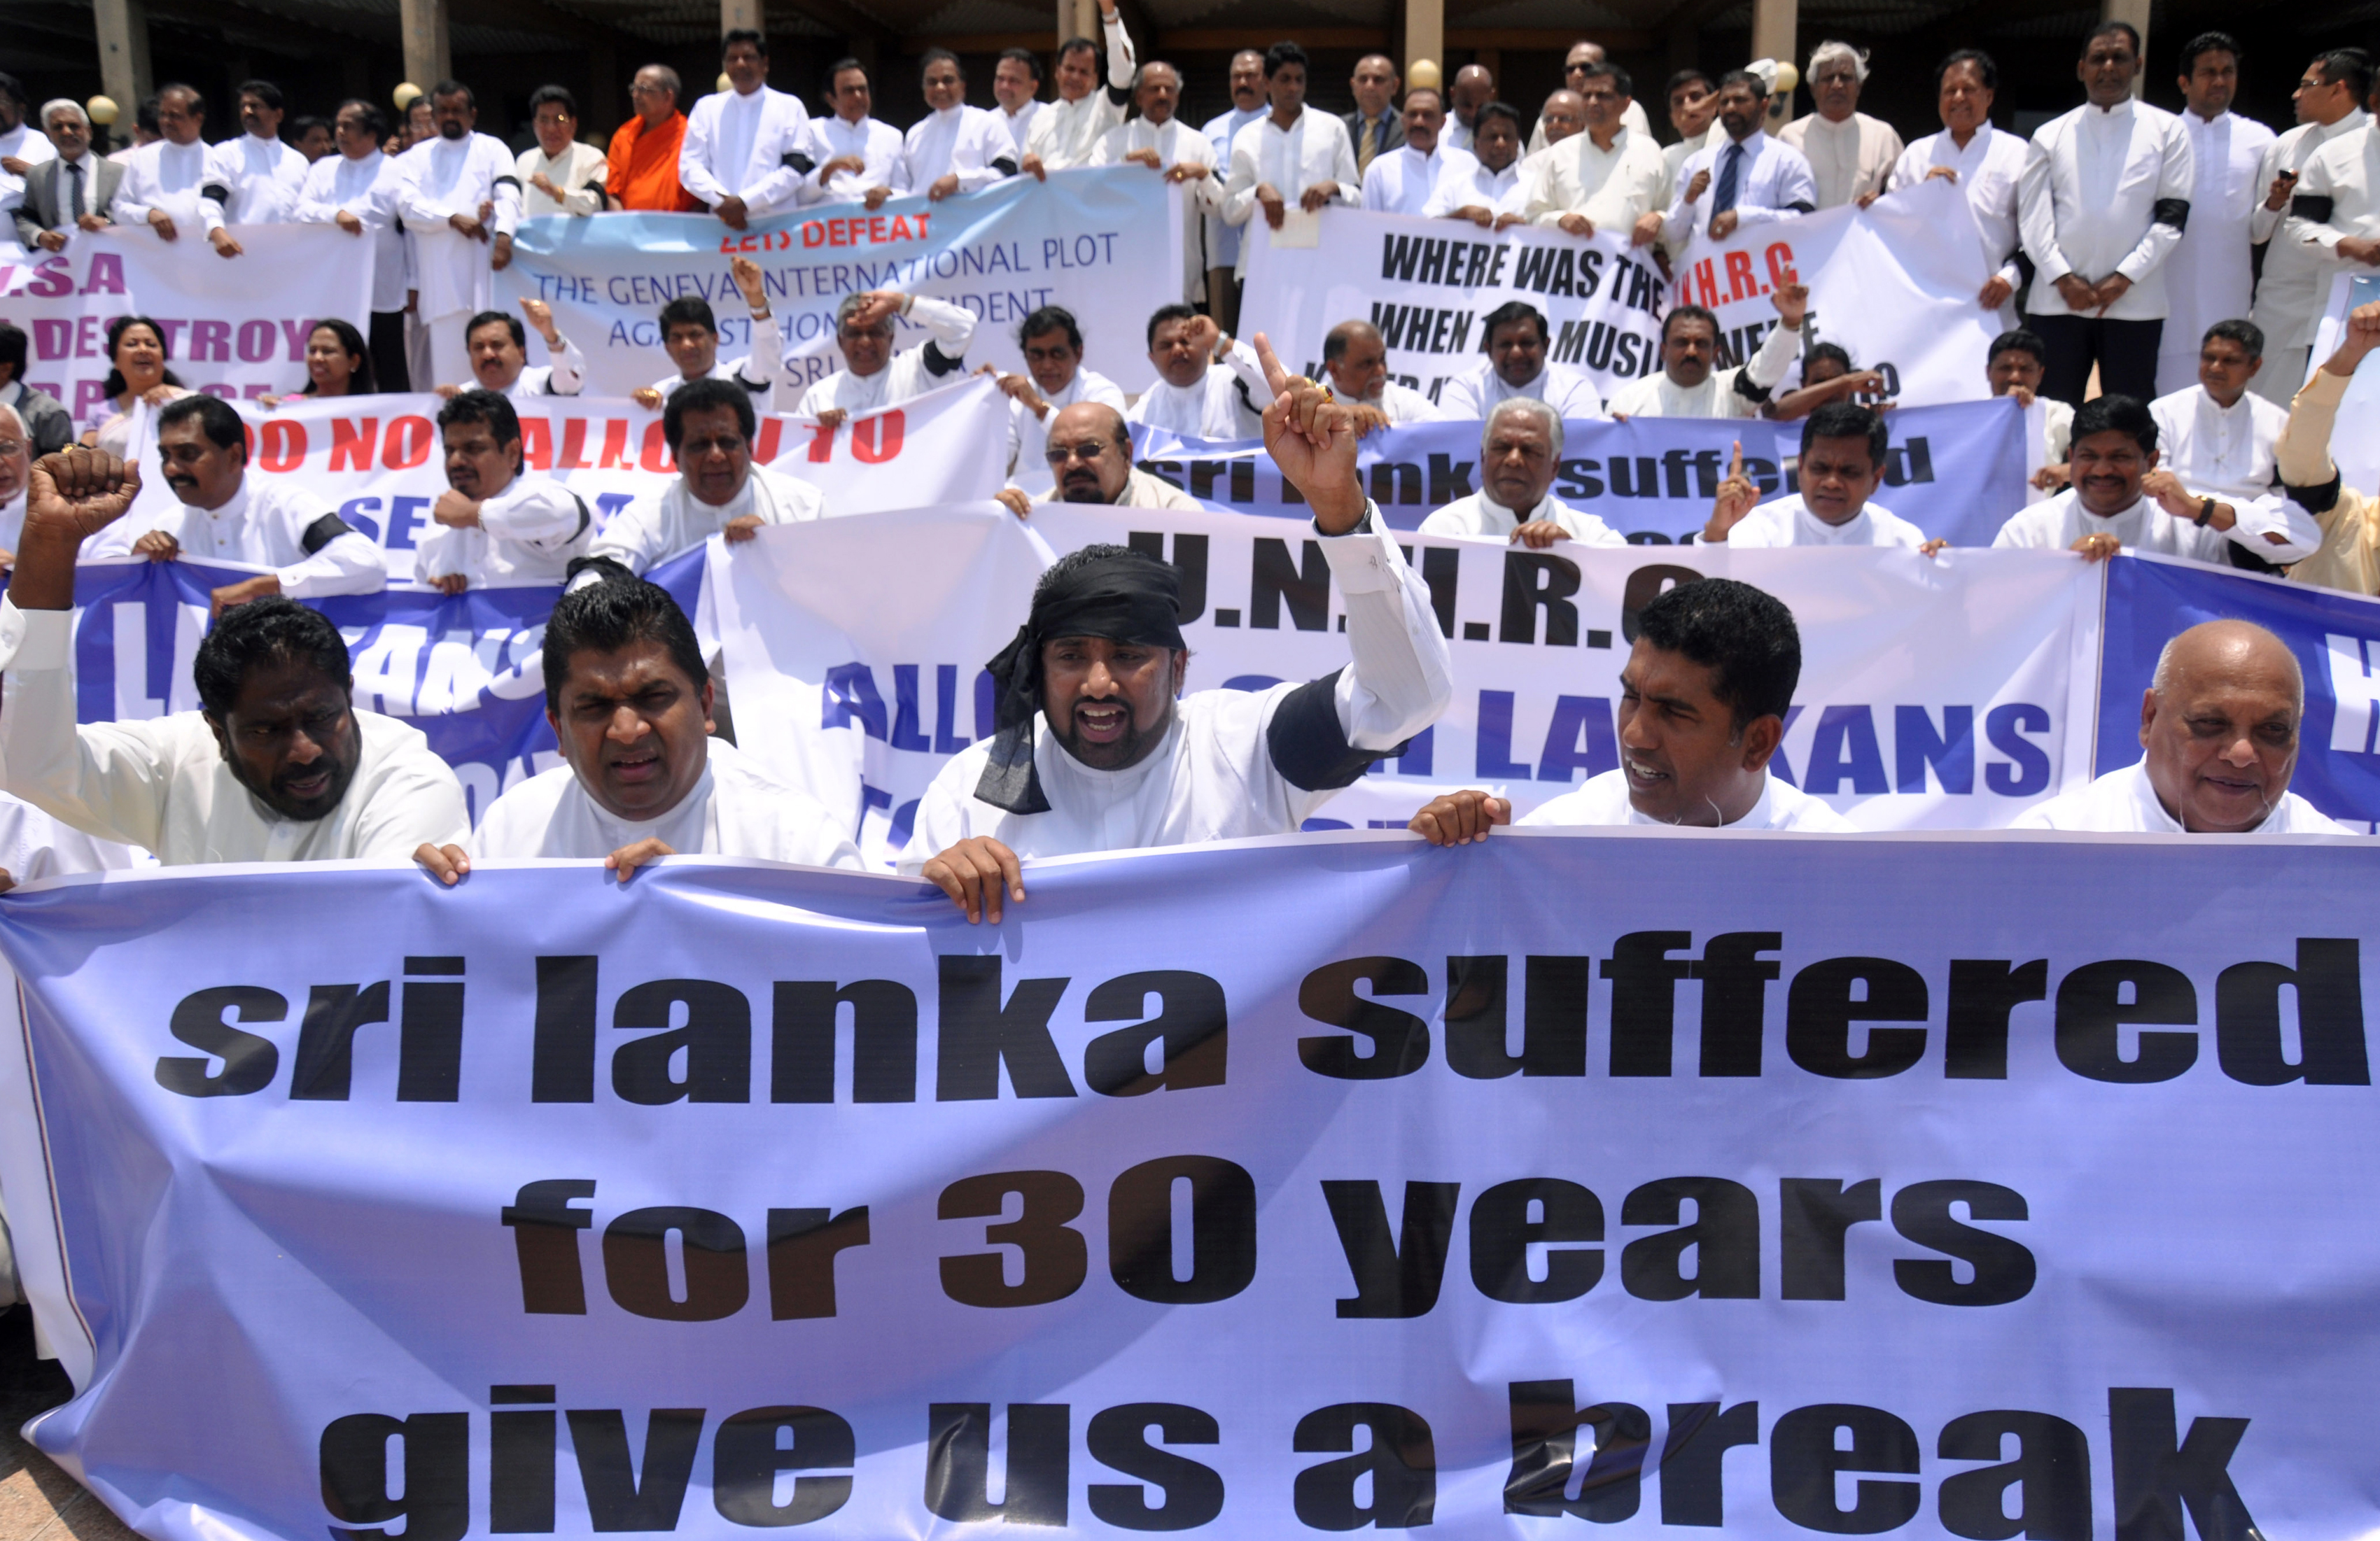 Sri Lanka's ruling party legislators demonstrate outside the national parliament on March 22, 2012 against a US-led move to pass a resolution against the country at the UN Human Rights Council in Geneva